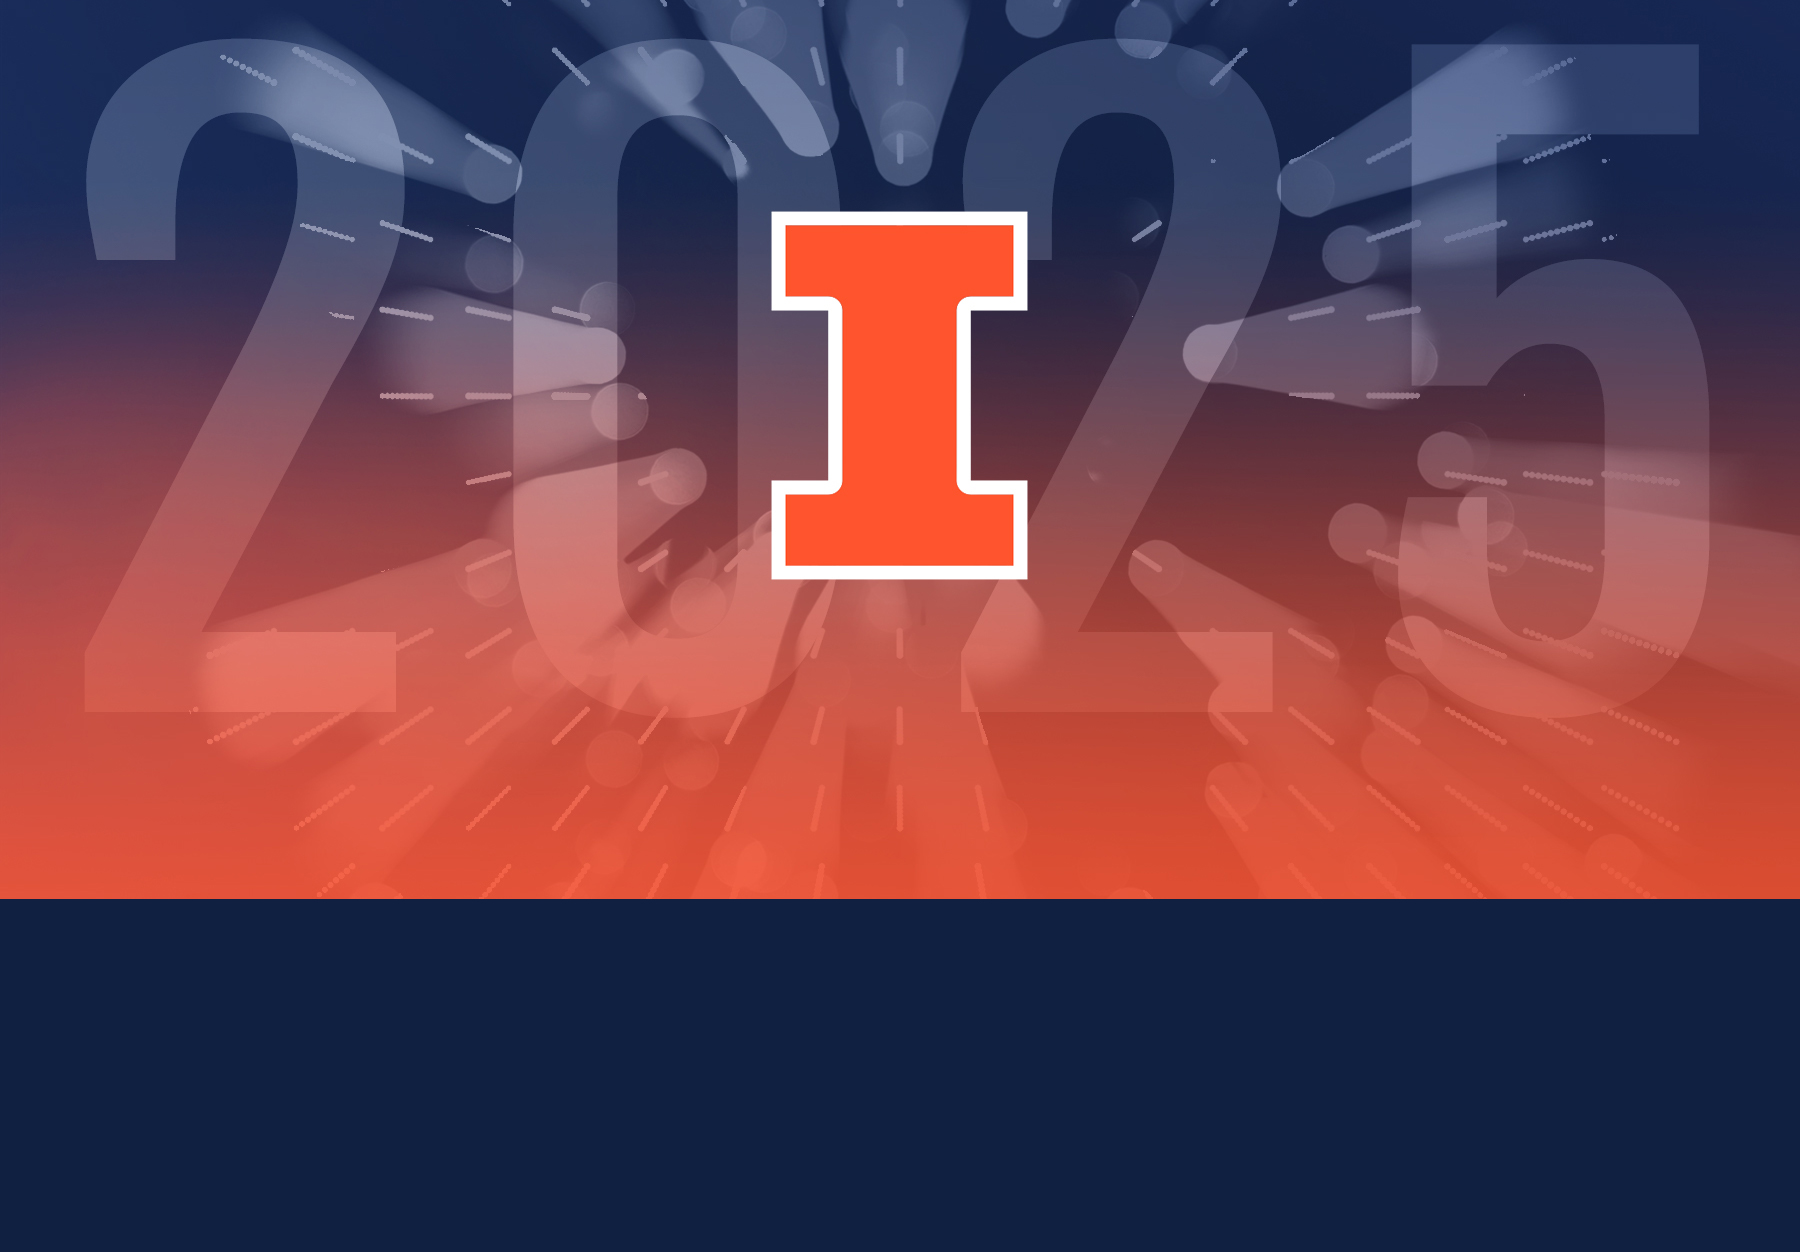 Orange and blue graphic features the Block I and the year 2025